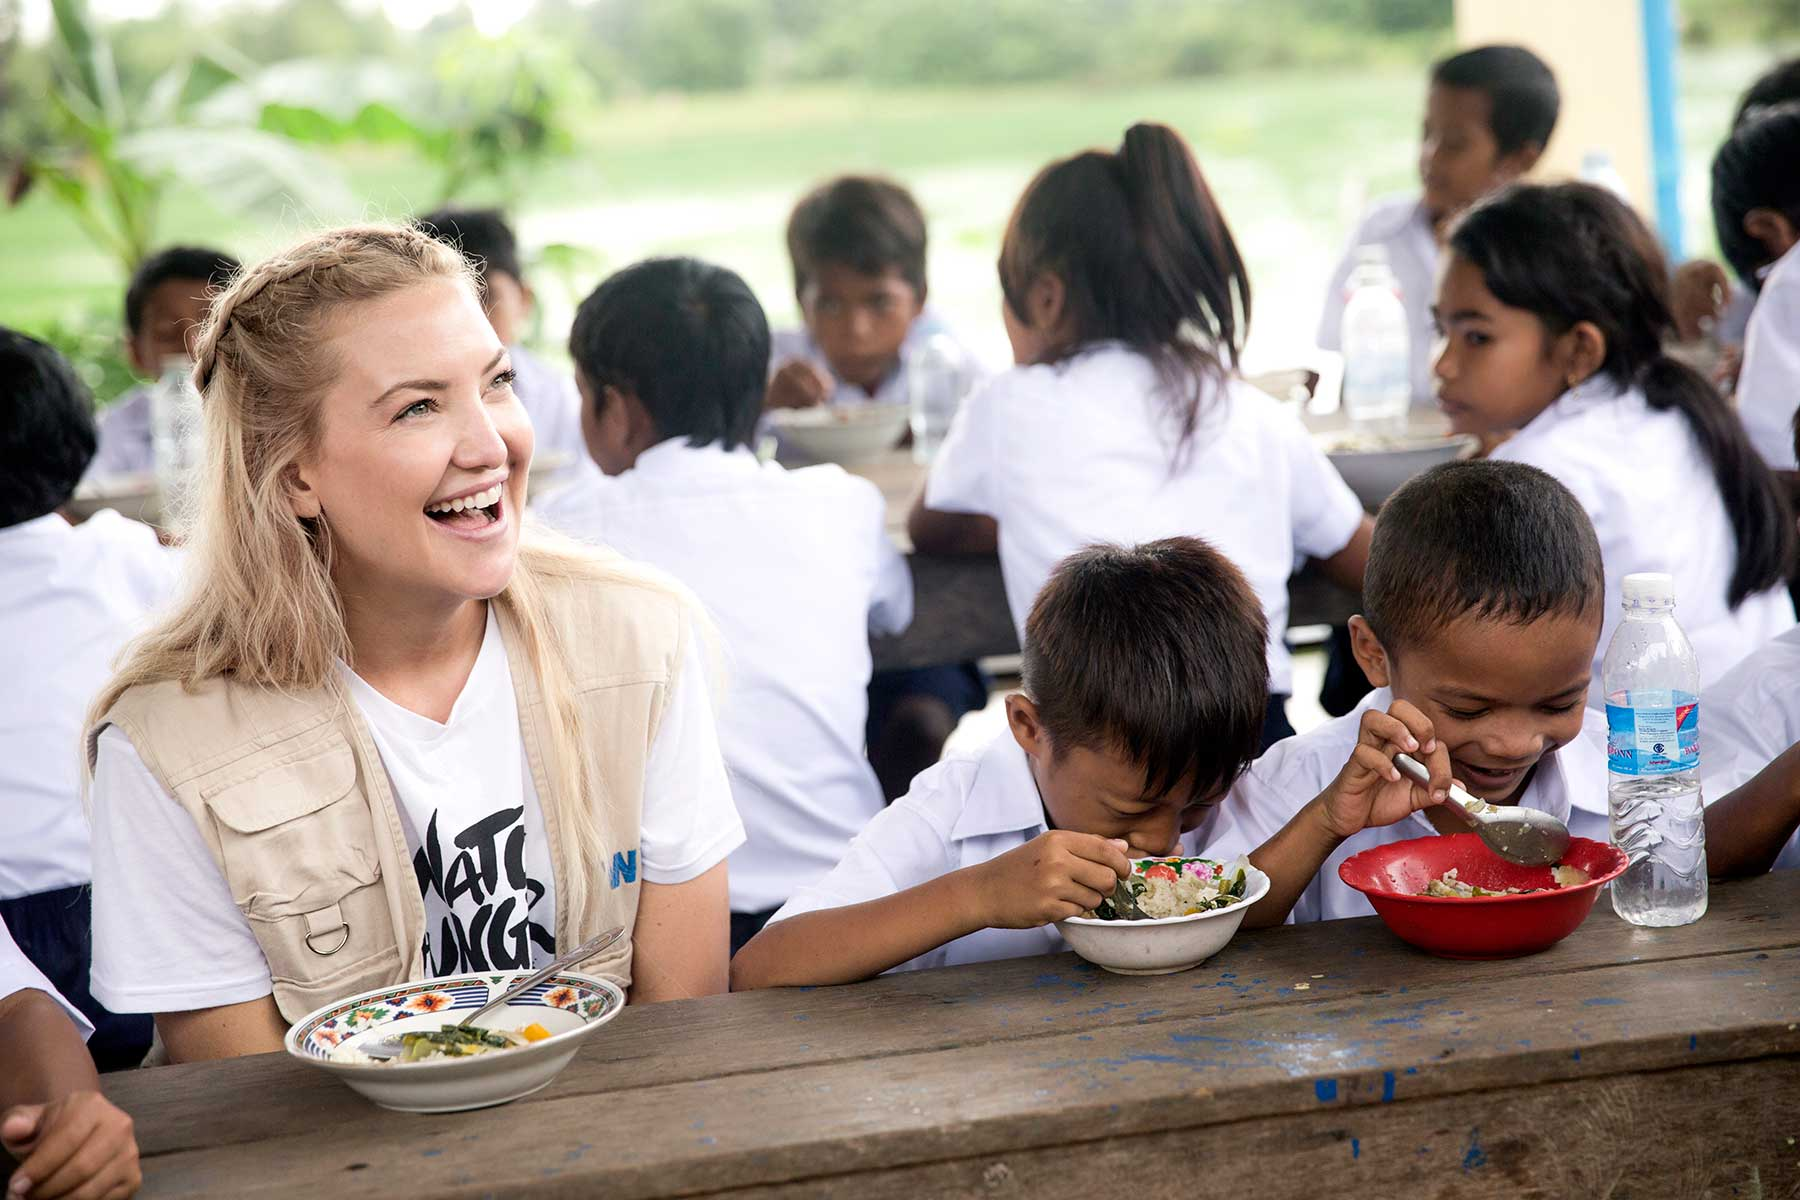 Watch Hunger Stop: Kate Hudson und Michael Kors gegen den Welthunger watch-hunger-stop-kate-hudson_01